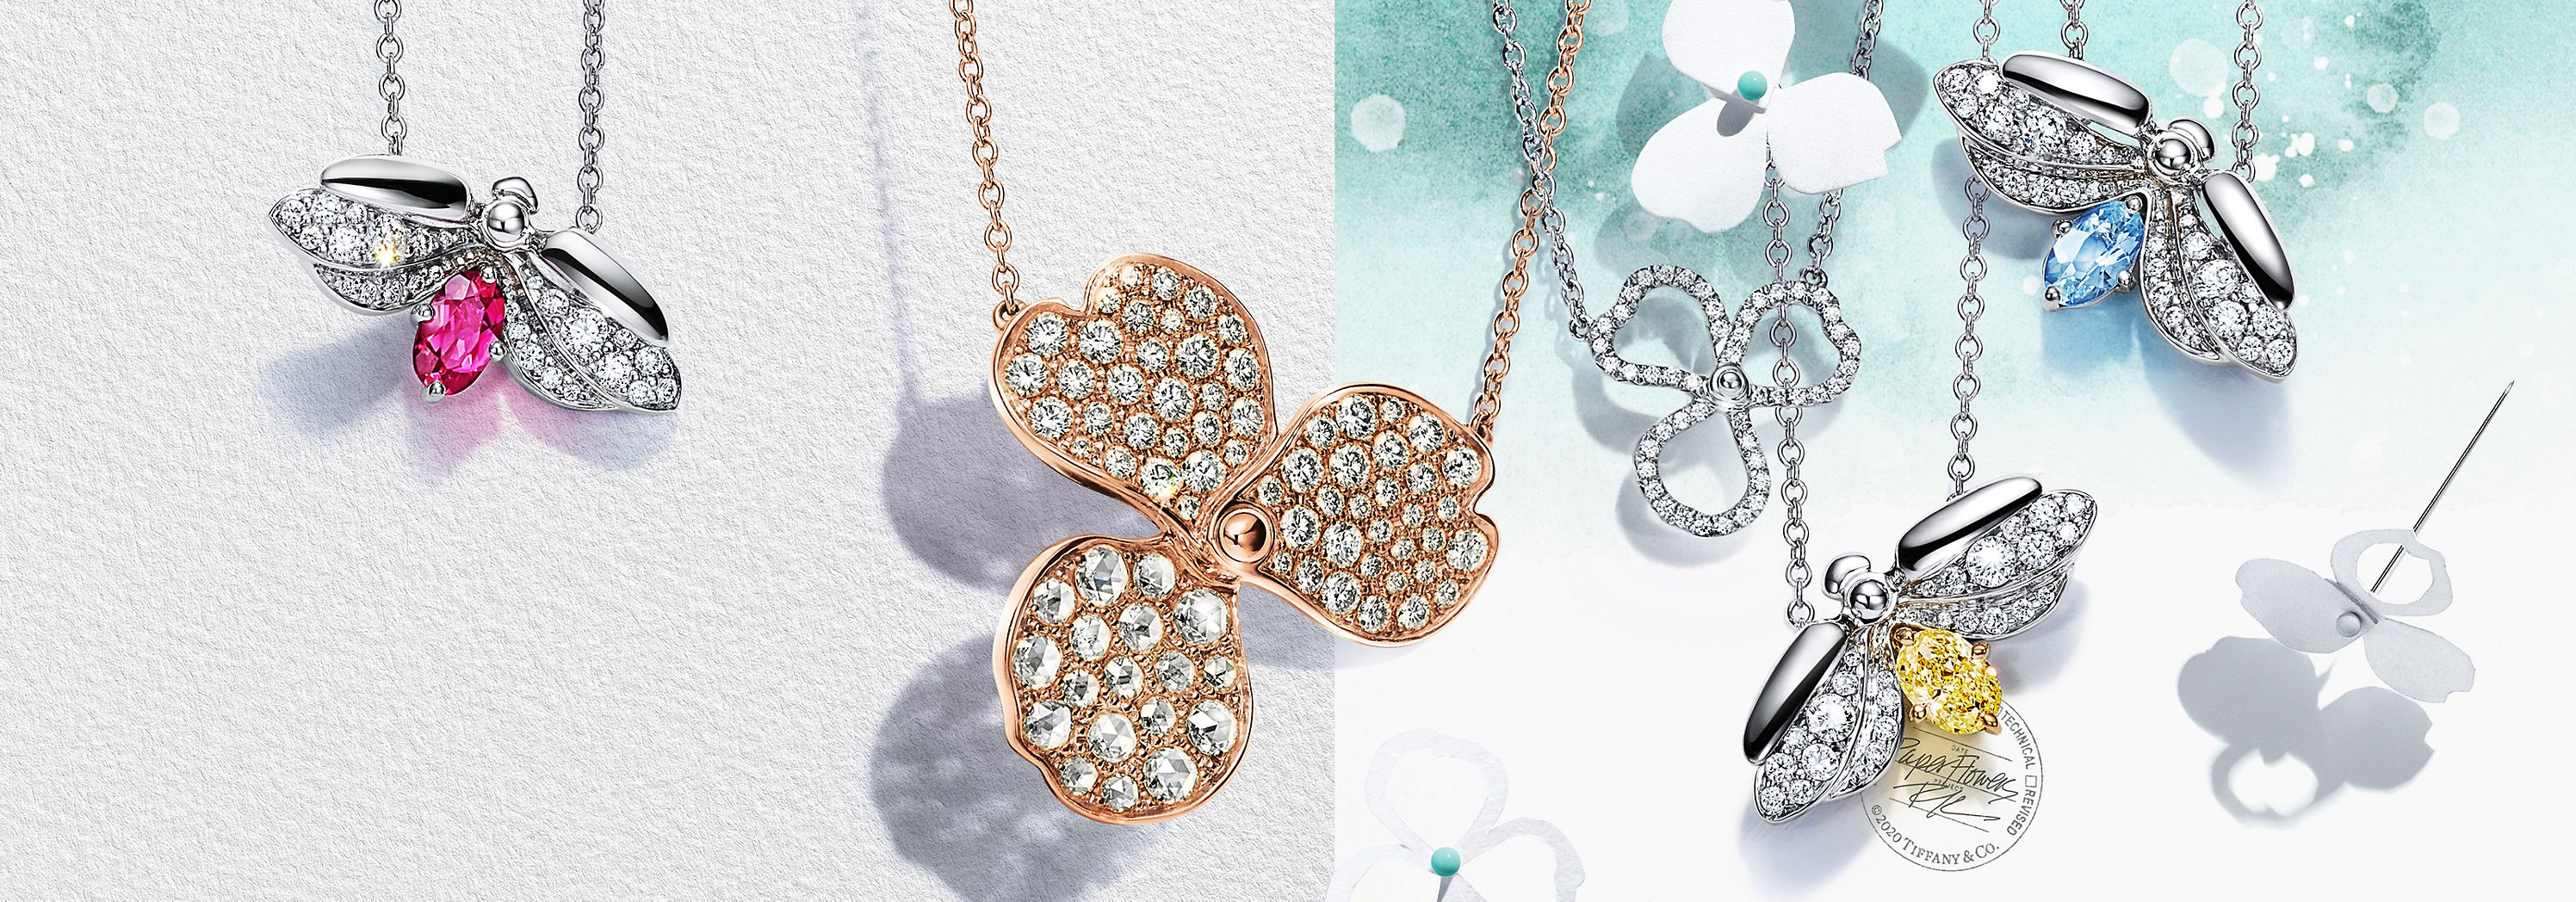 Shop the Tiffany Paper Flowers™ collection